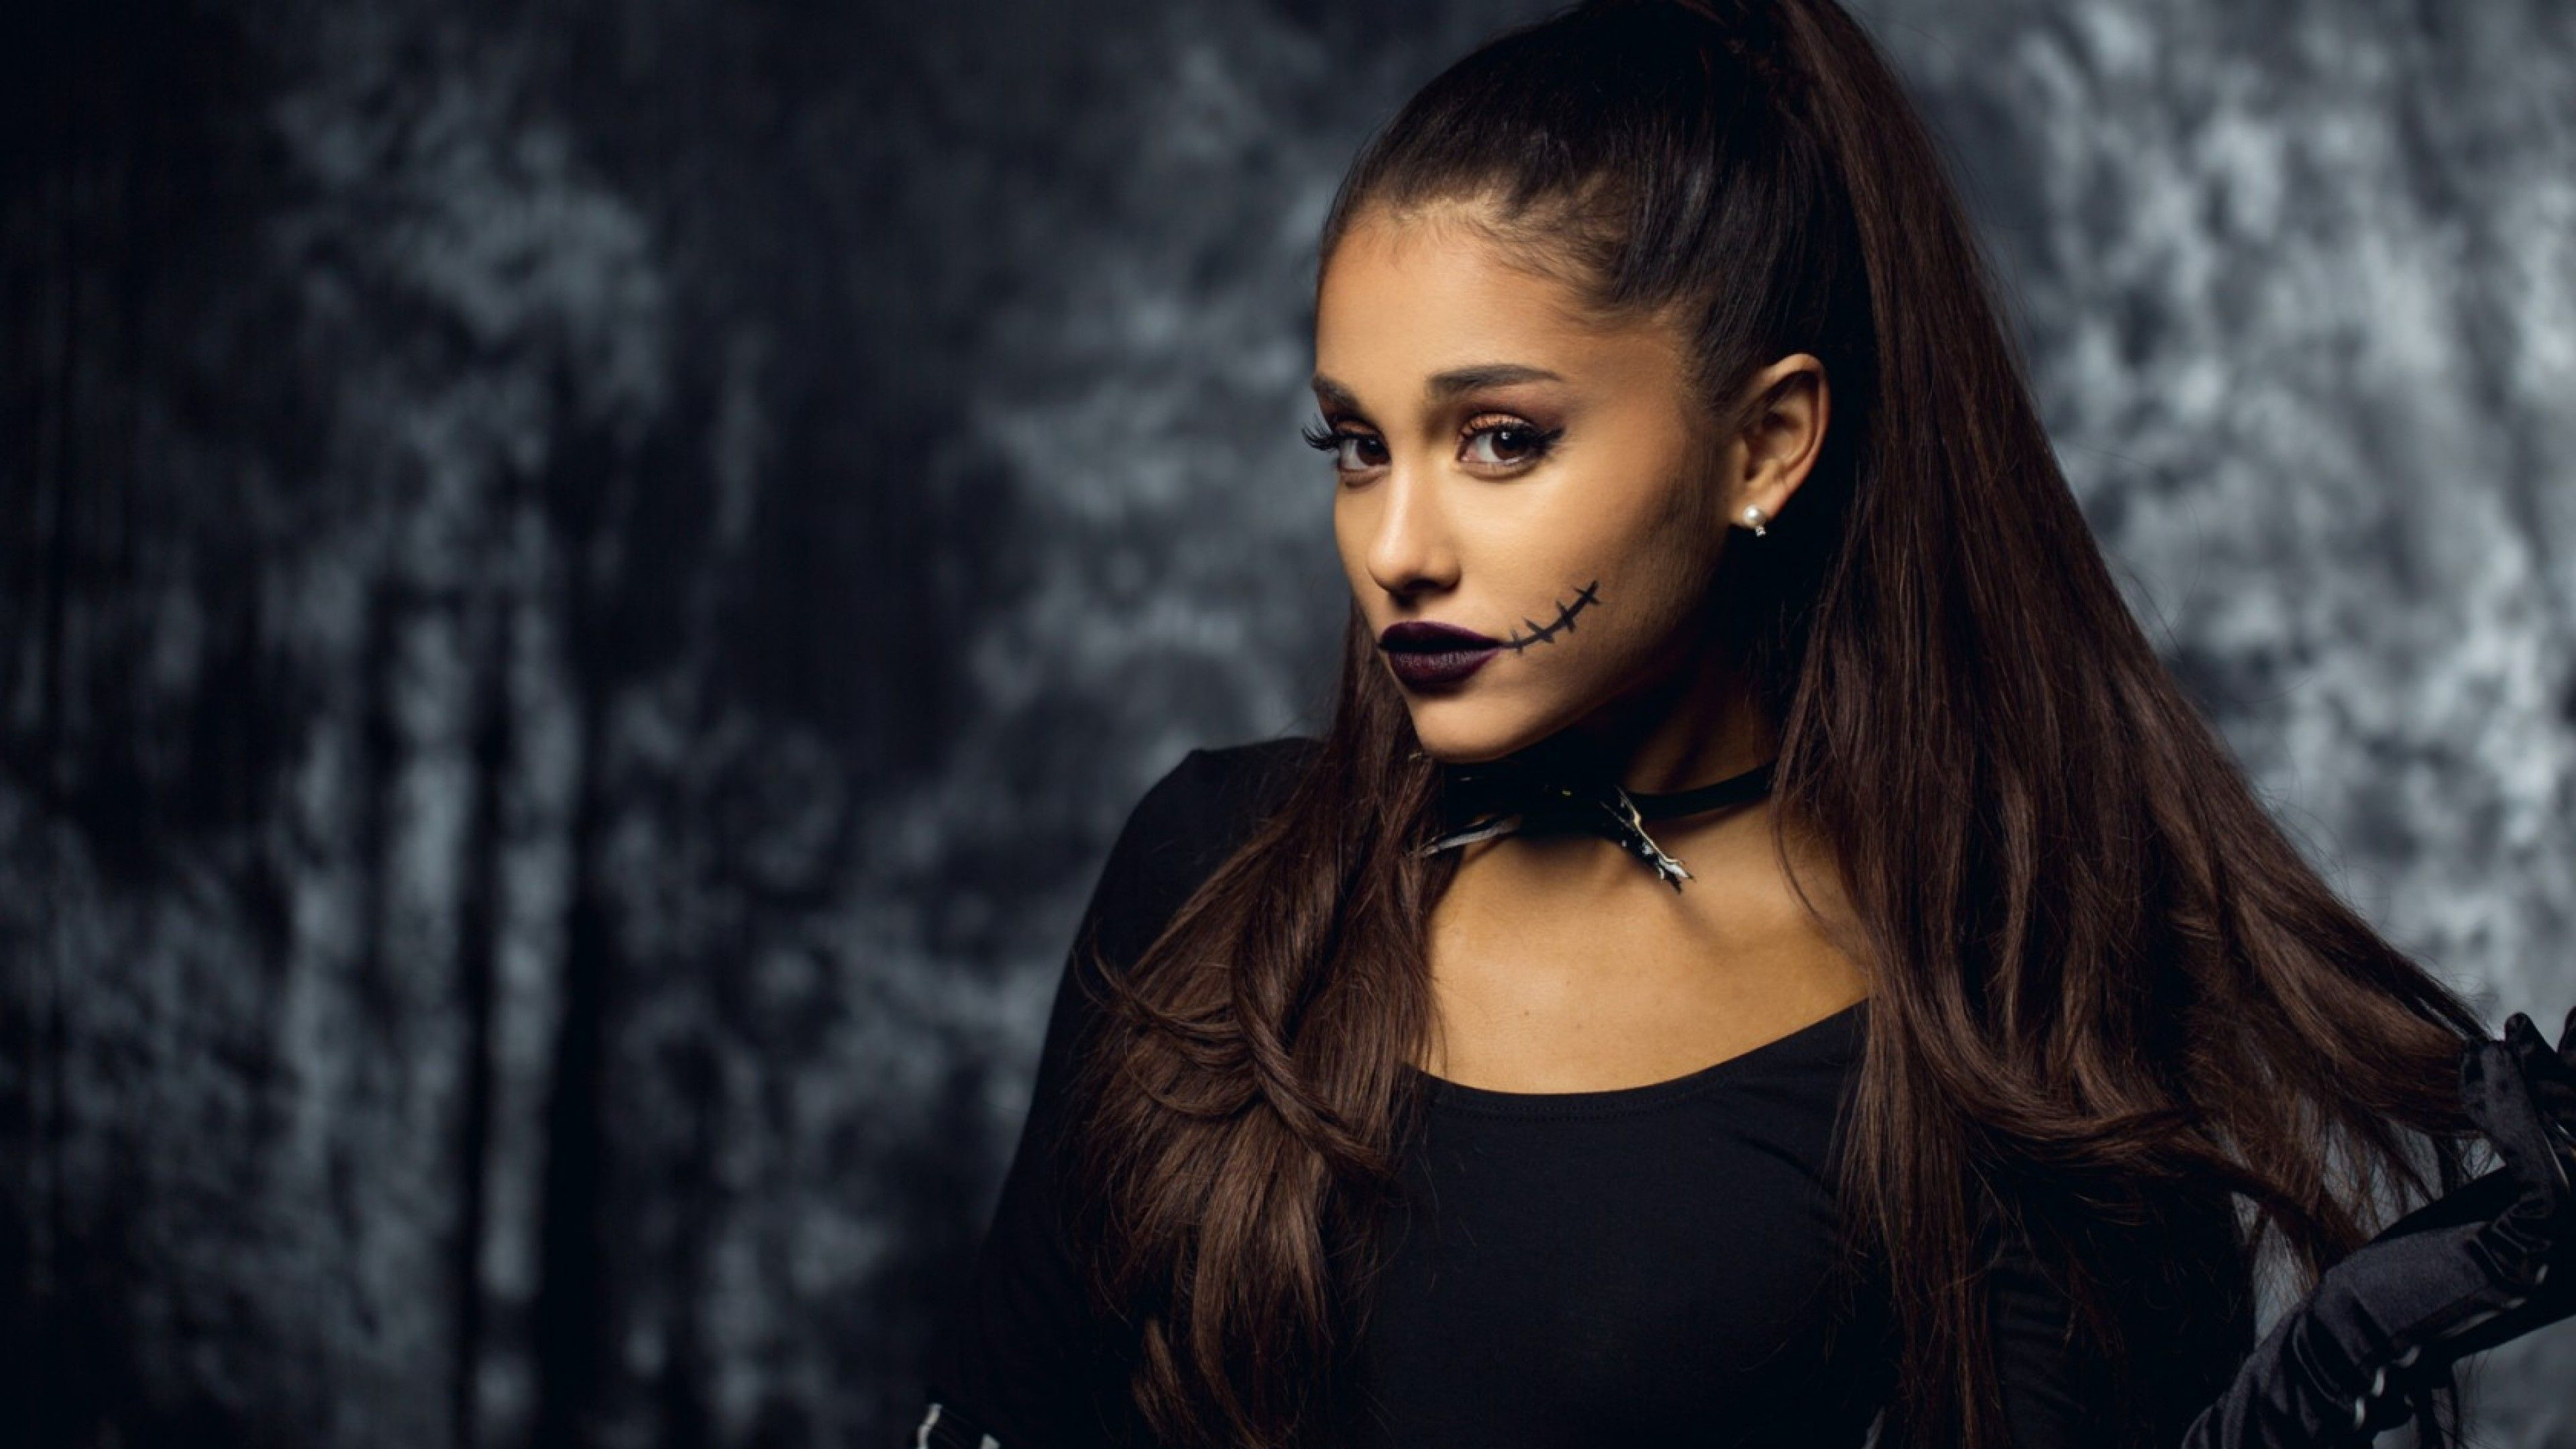 Ariana Grande 2018 Wallpapers For Mobile Hd - Ariana Grande , HD Wallpaper & Backgrounds